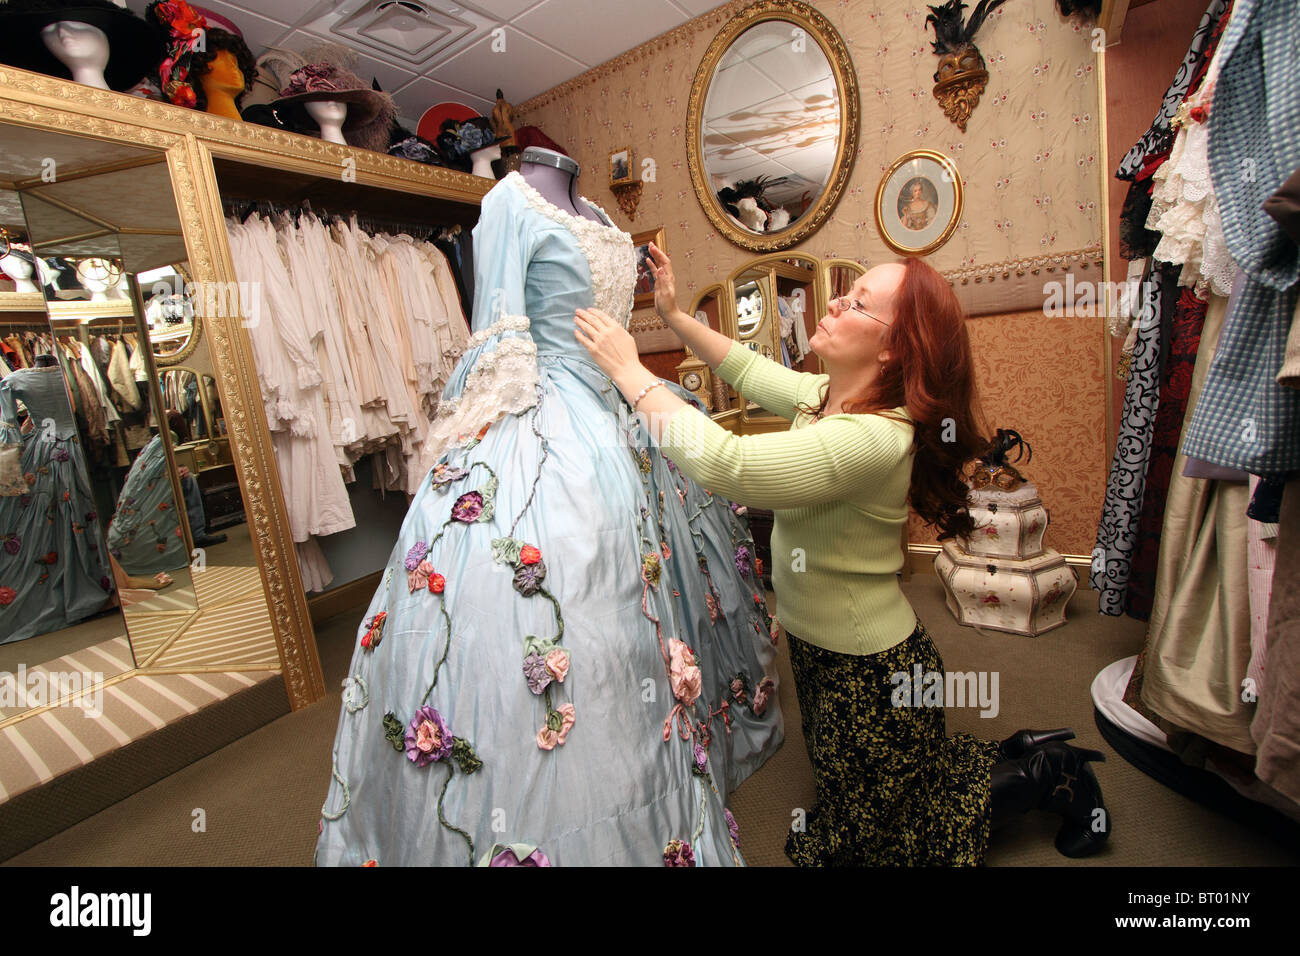 Seamstress adjusting 18th century silk gown costume for Carnival, with period costumes in seamstress wardrobe shop - Stock Image